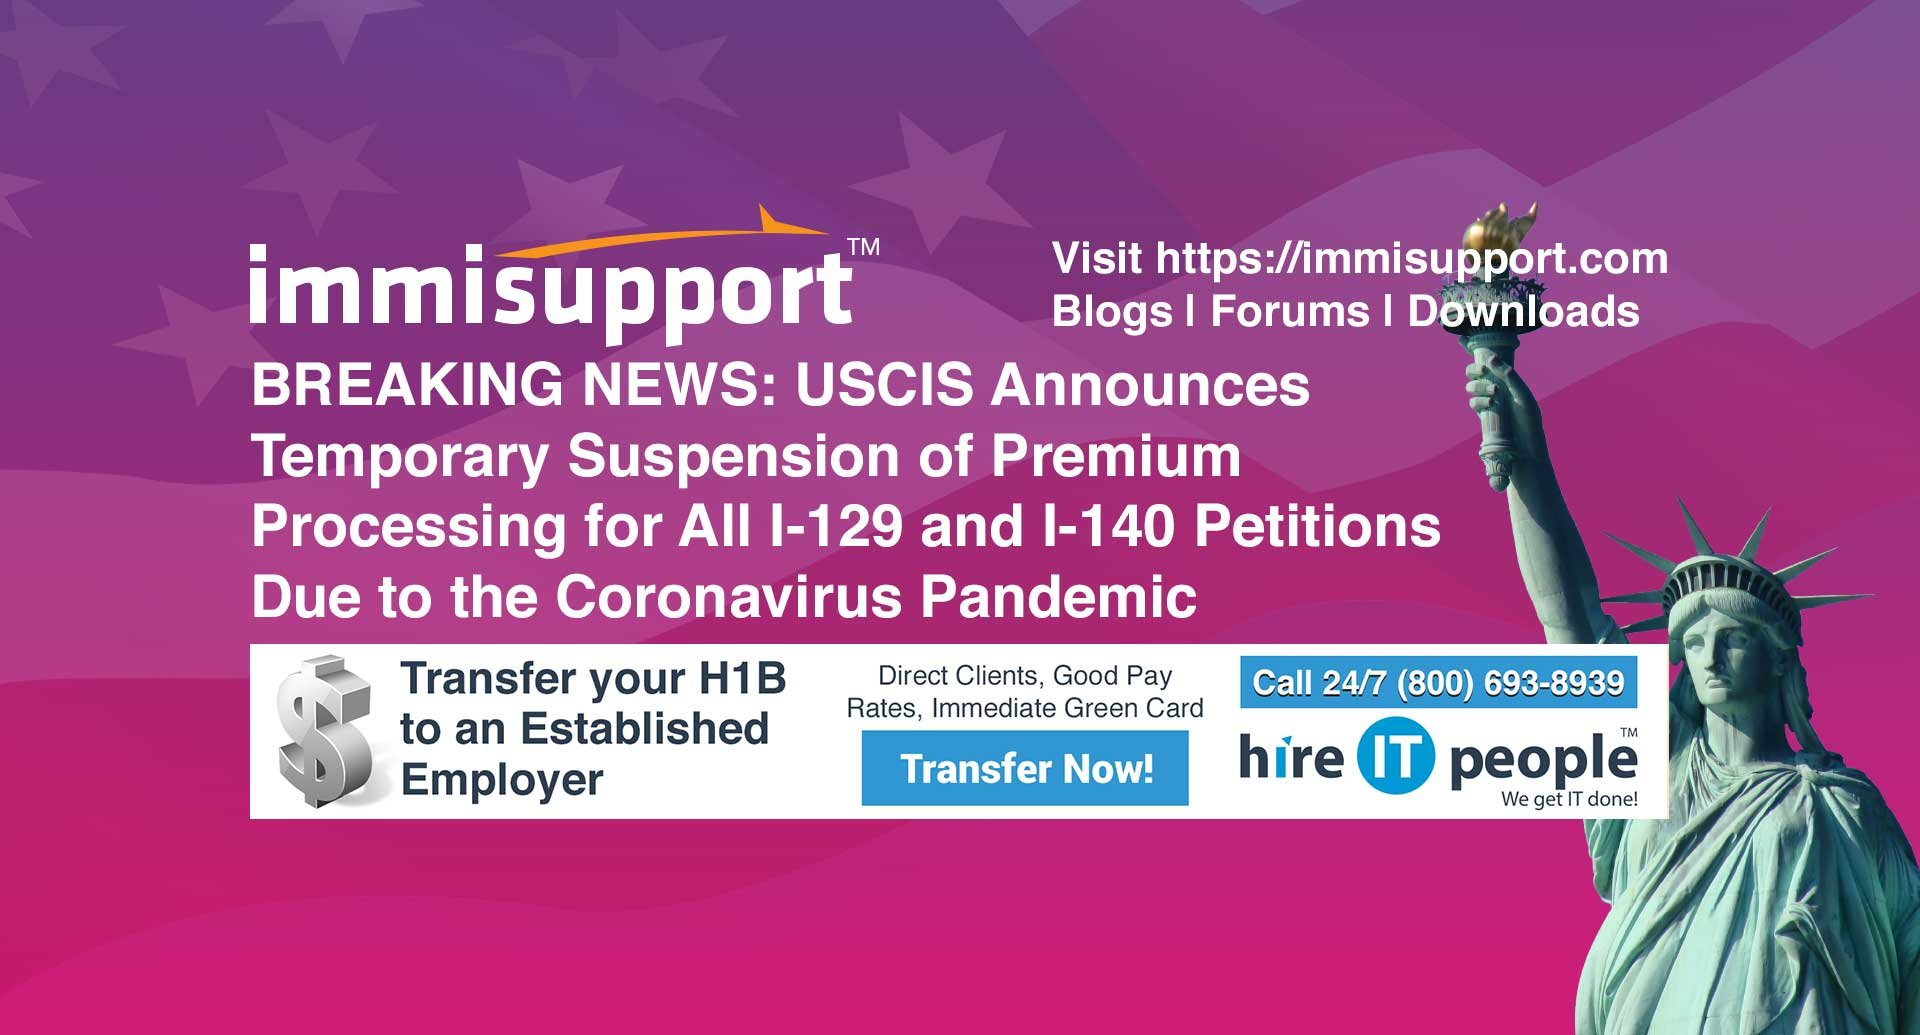 BREAKING NEWS: USCIS Announces Temporary Suspension of Premium Processing for All I-129 and I-140 Petitions Due to the Coronavirus Pandemic